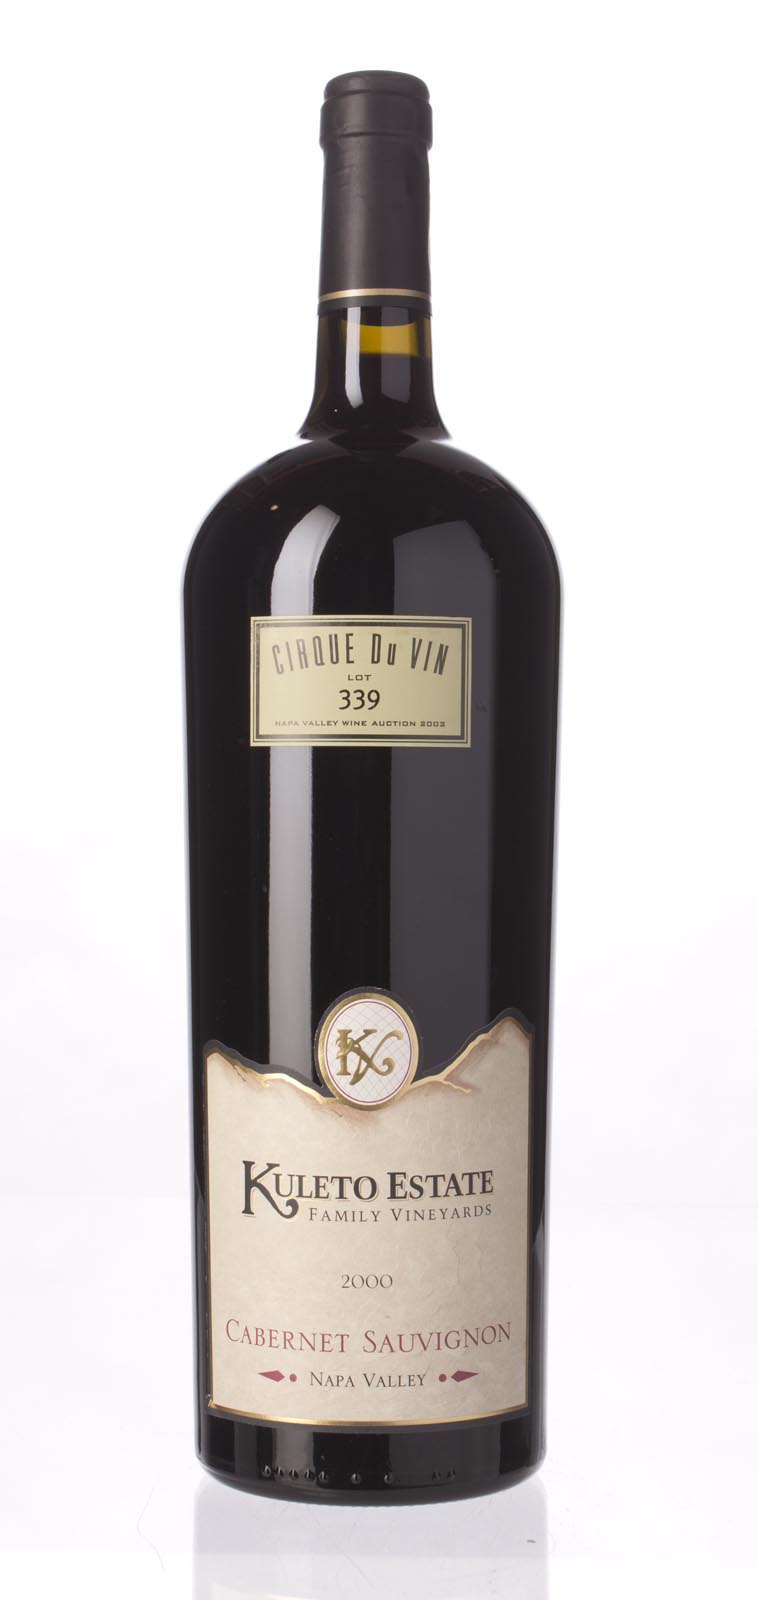 Kuleto Estate Cabernet Sauvignon Cirque du Vin 2000, 1.5L () from The BPW - Merchants of rare and fine wines.